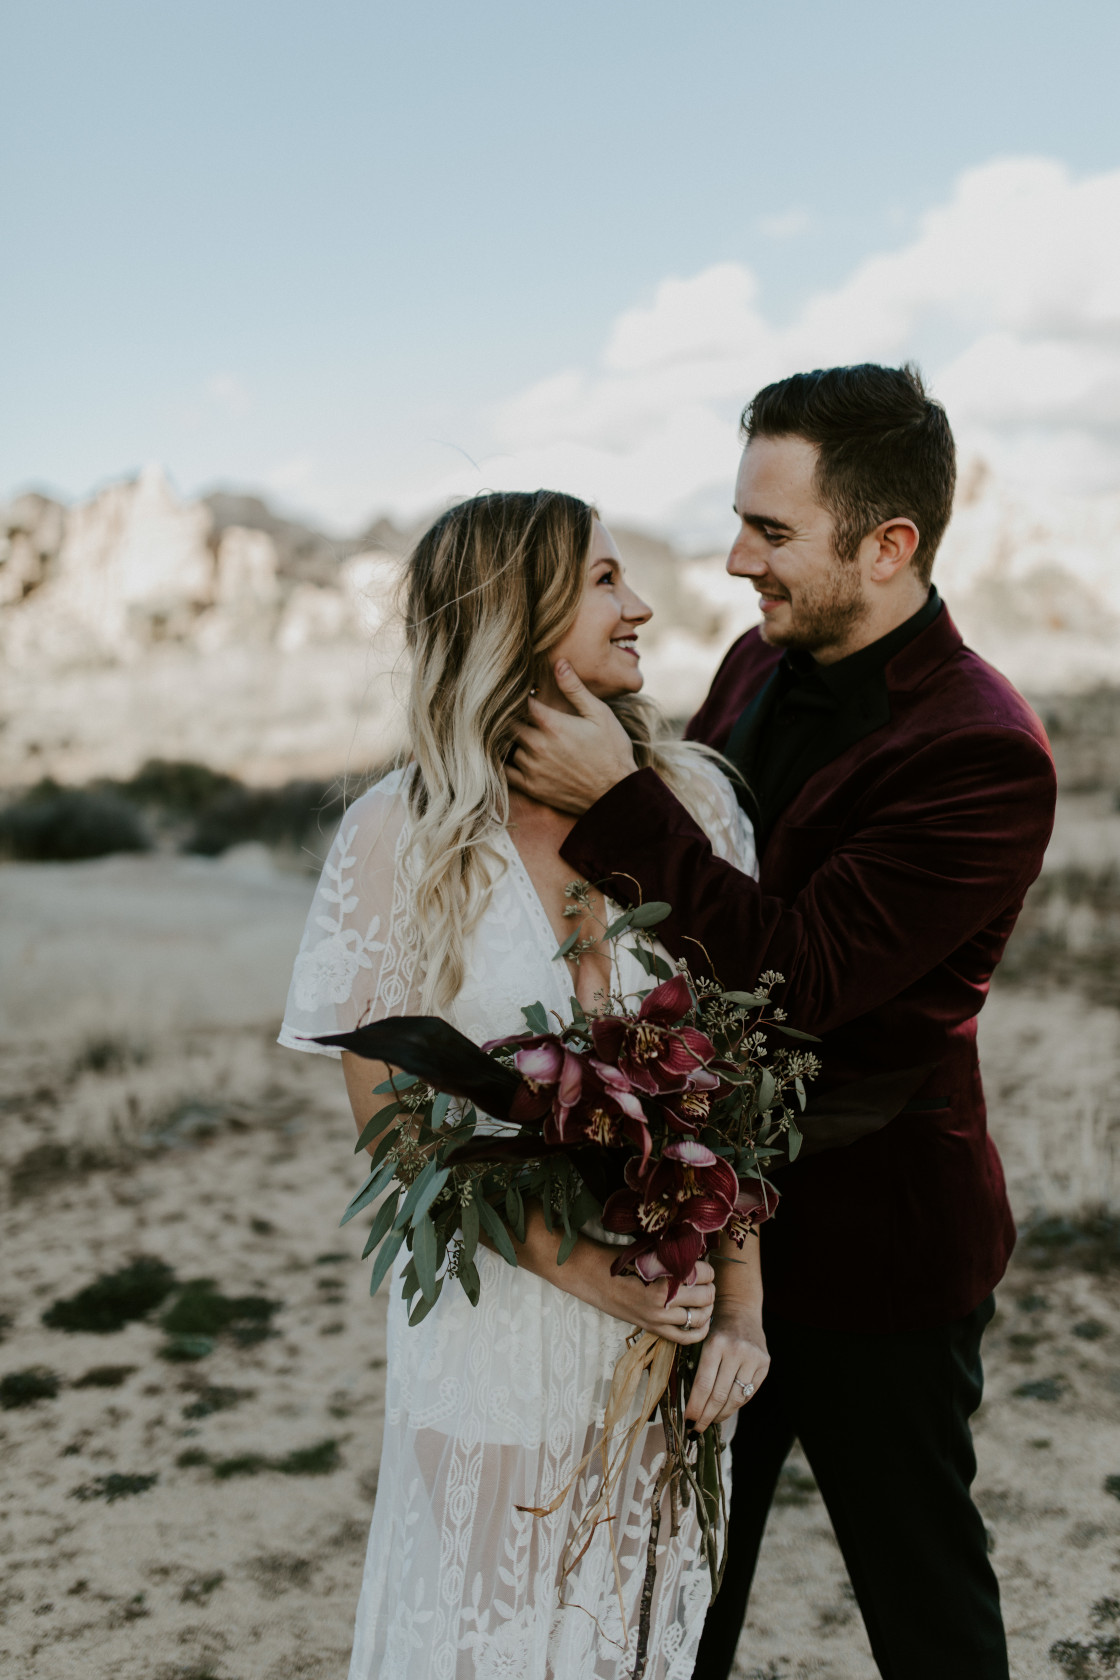 Alyssa and Jeremy stand side by side at Joshua Tree National Park. Elopement wedding photography at Joshua Tree National Park by Sienna Plus Josh.